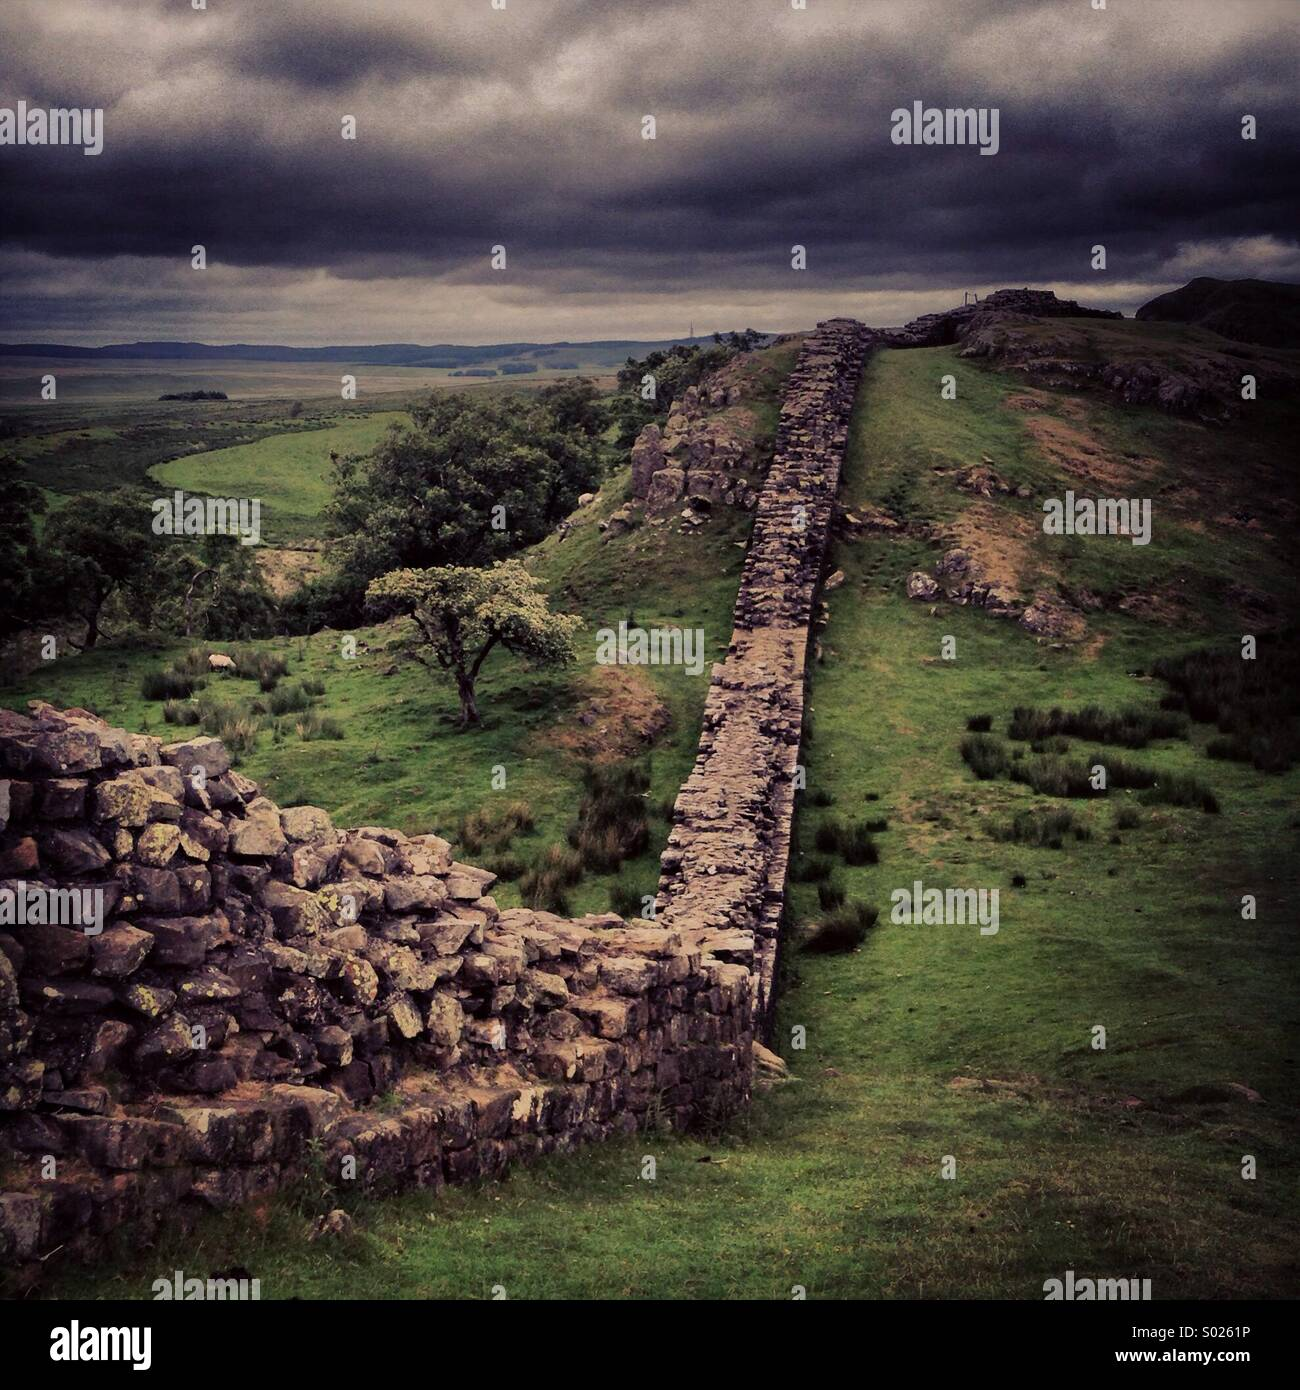 Hadrian's Wall - The Crags - Stock Image